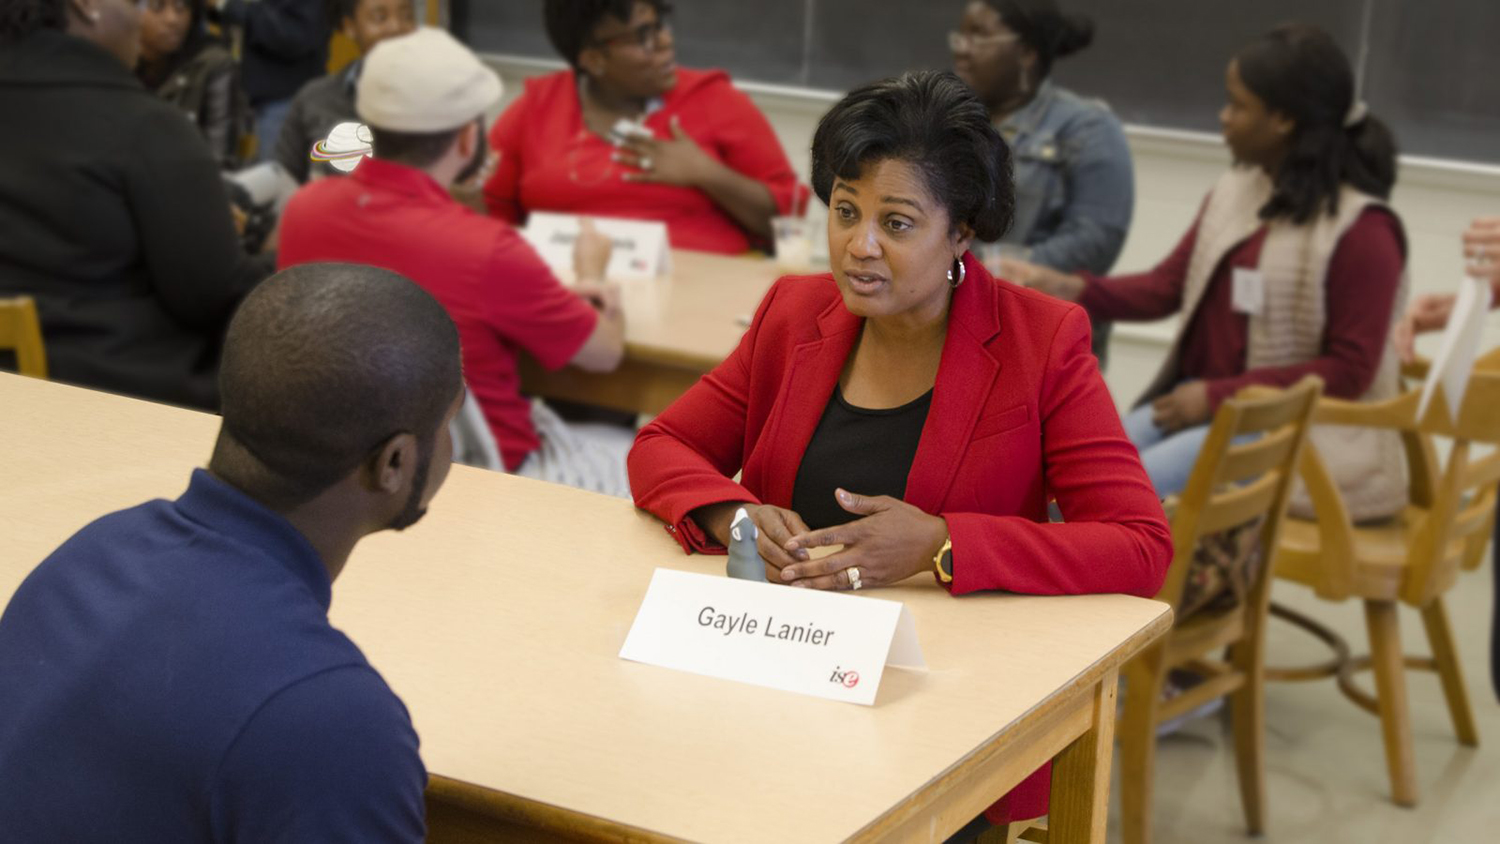 ISE alumna Gayle Lanier interacts with student at minority recruitment event.